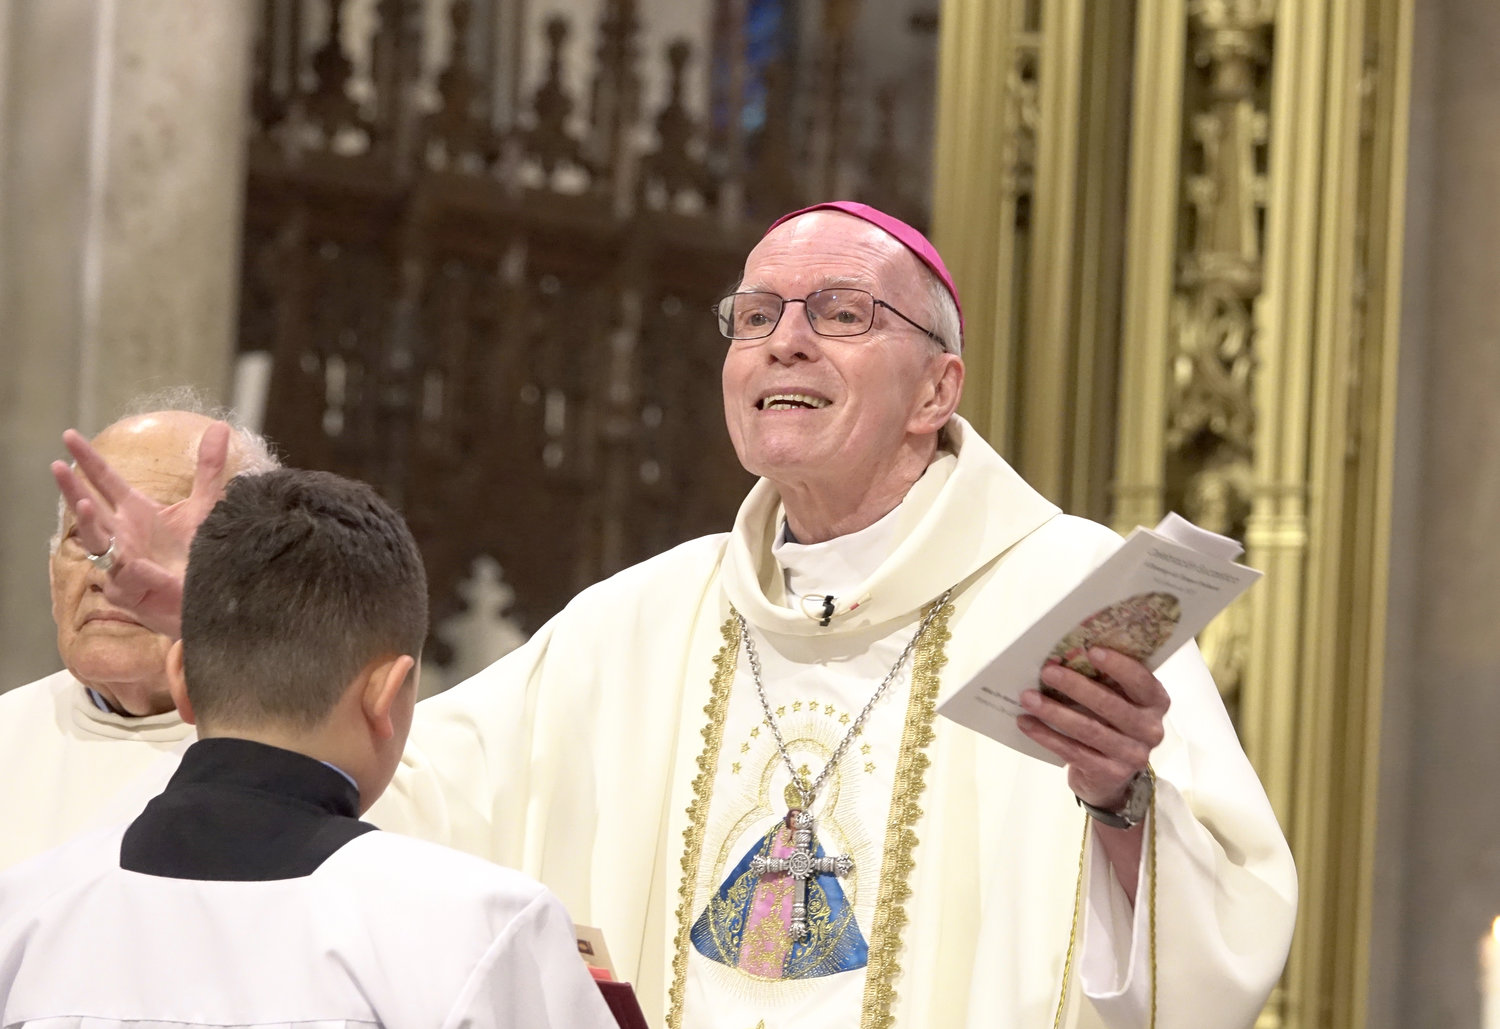 Bishop Emeritus Francois Lapierre, P.M.E., of the Diocese of Saint-Hyacinthe in Quebec, Canada, served as principal celebrant and homilist.